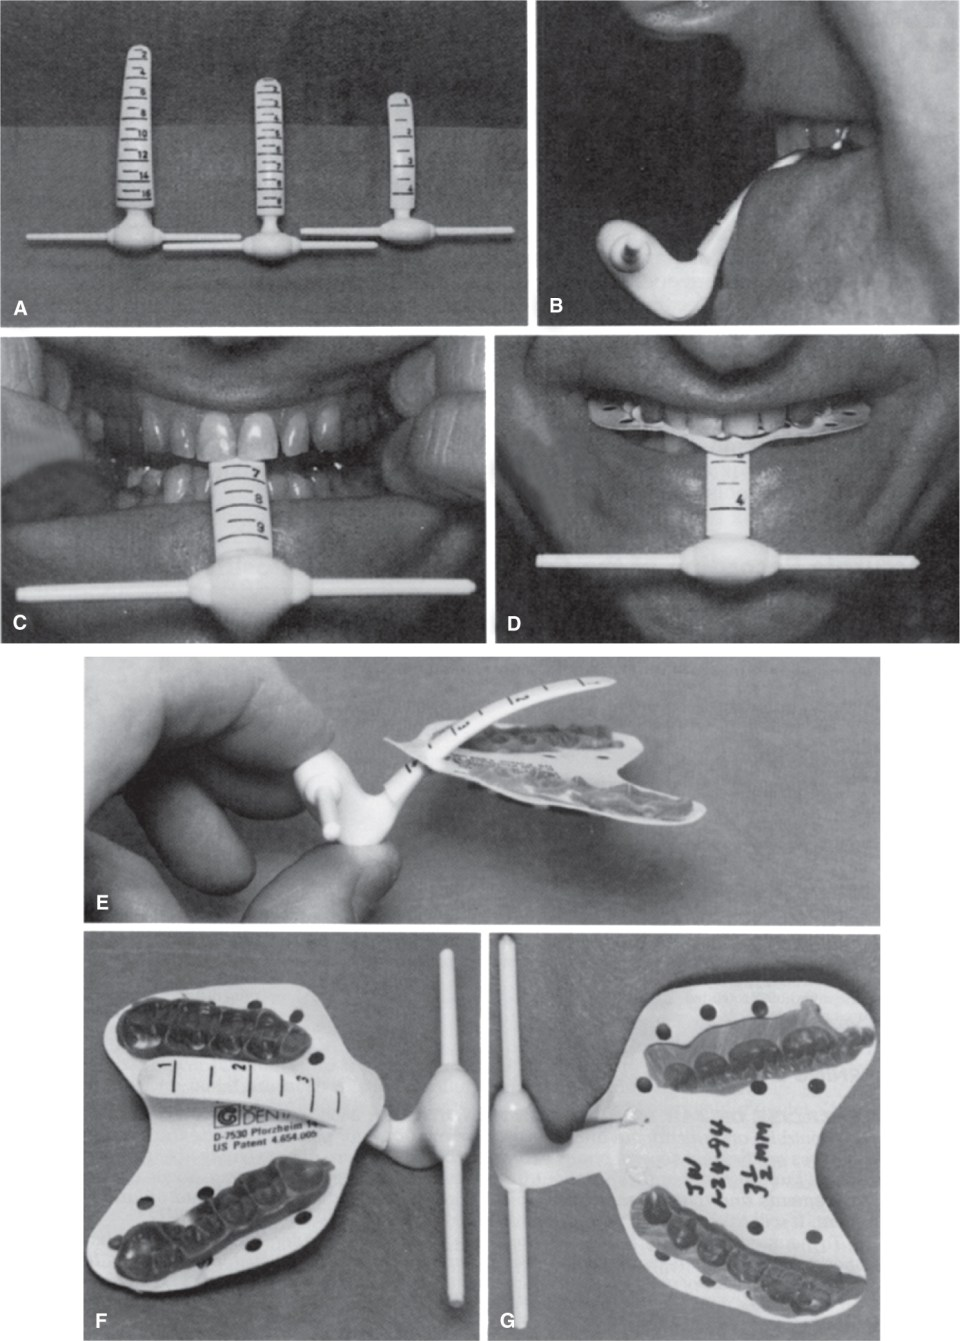 Images A, B, C, D, E, F, and G show the process of Obtaining centric relation jaw registrations.